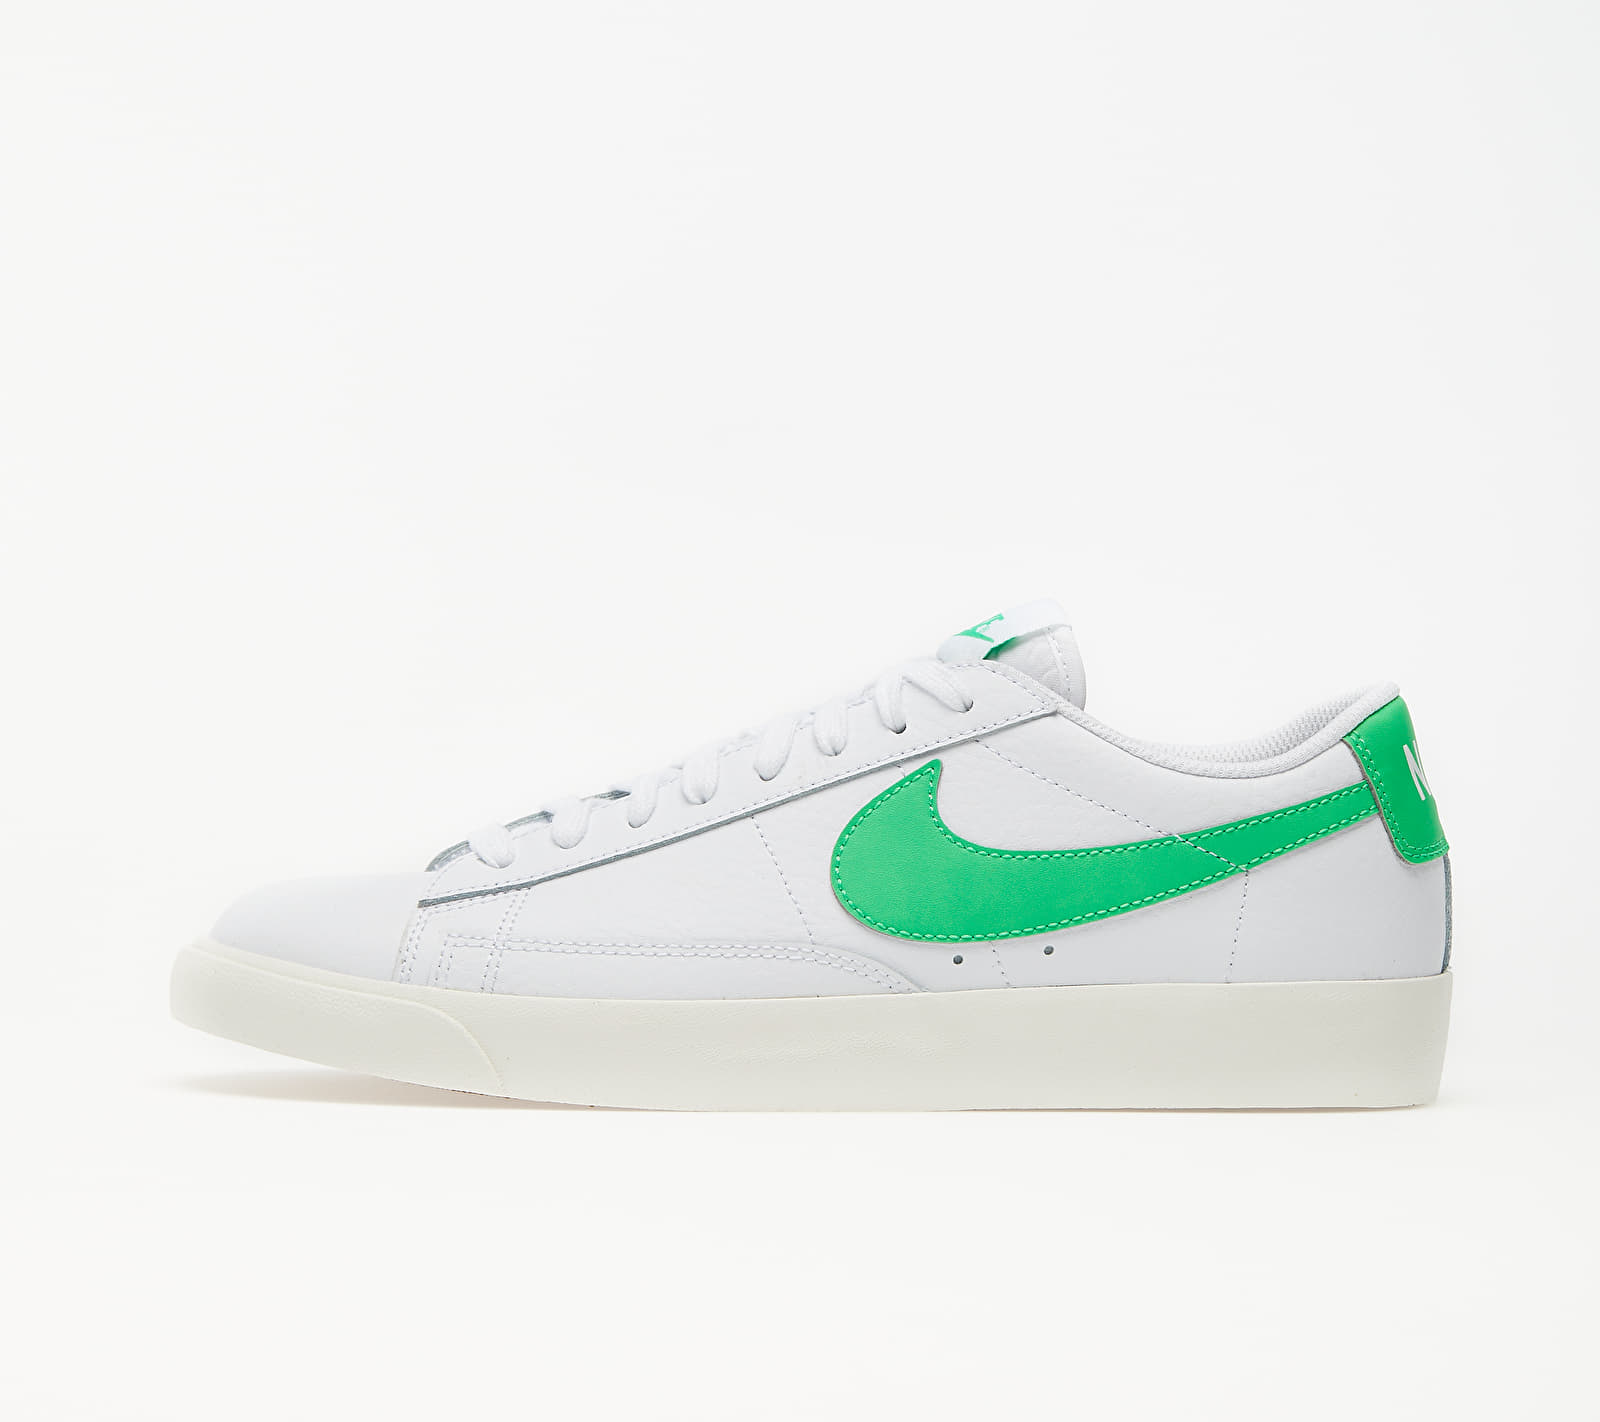 Nike Blazer Low Leather White/ Green Spark-Sail CI6377-105